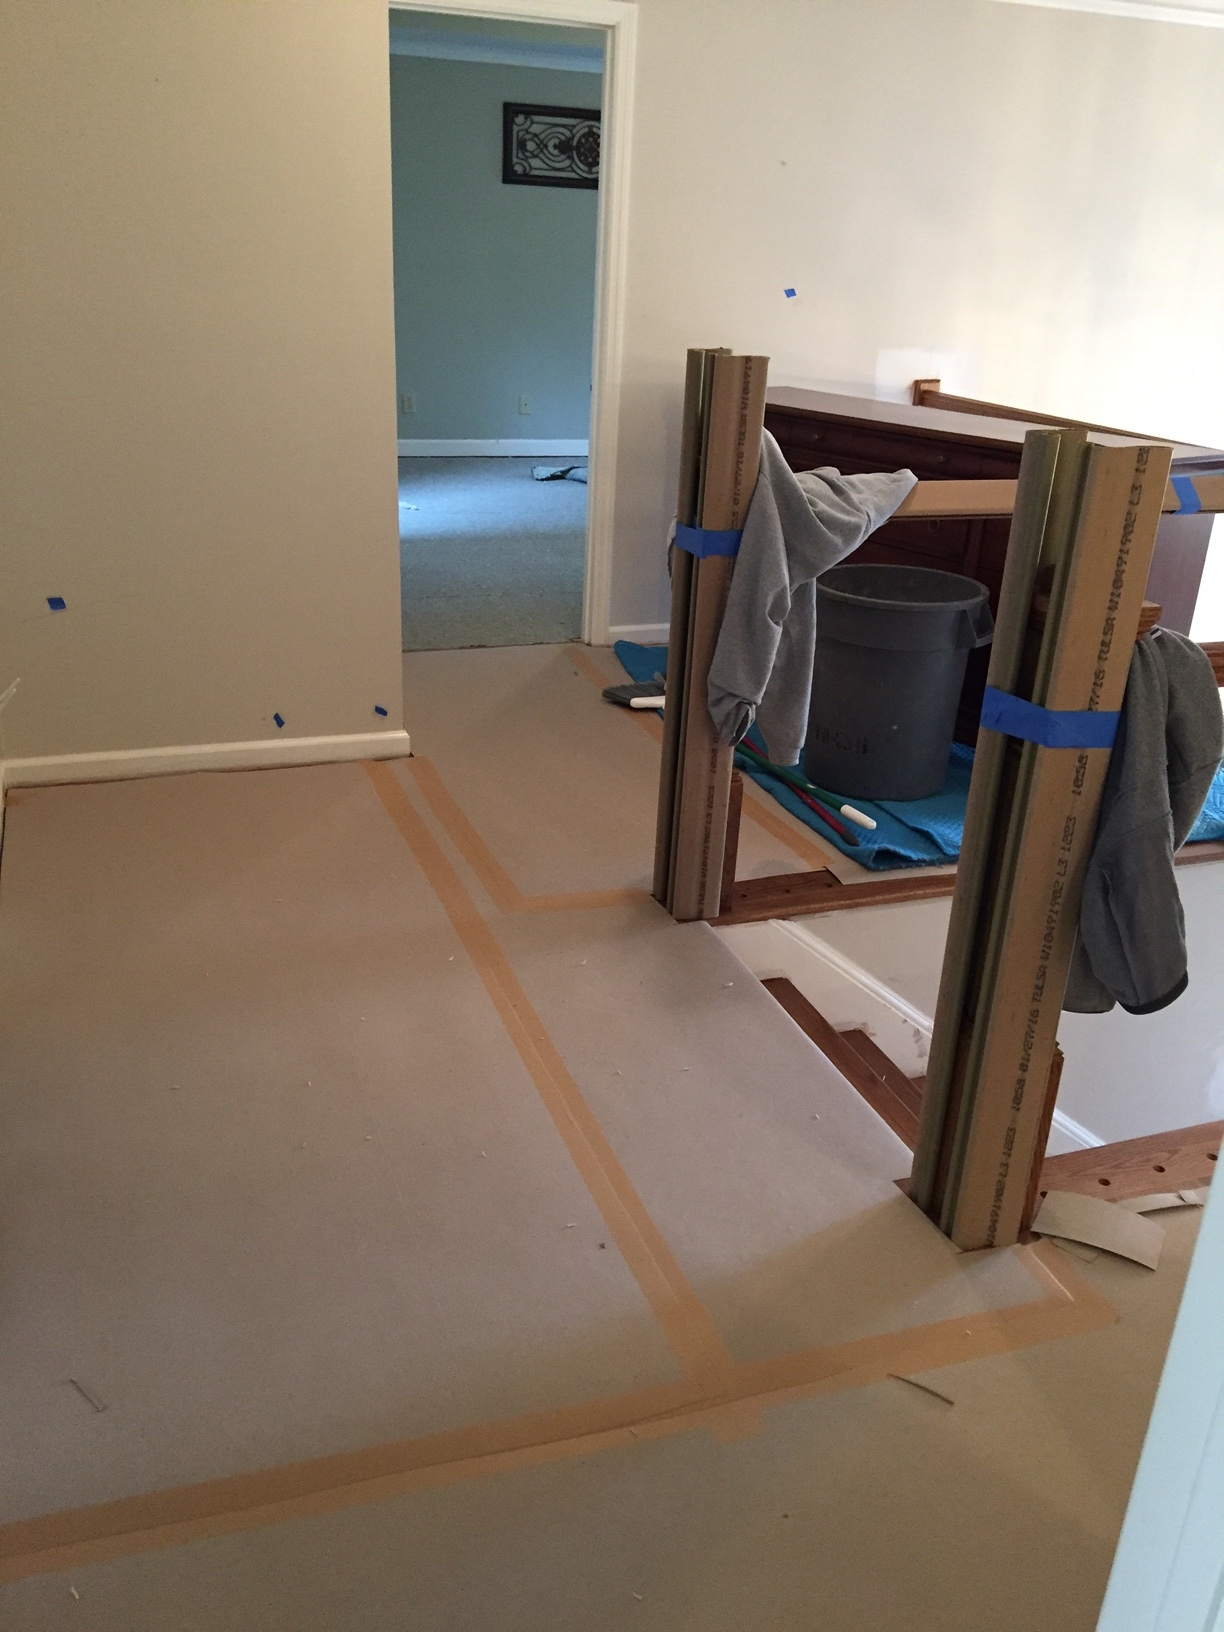 No new floors or banisters getting scratched or dinged up by our crew -- we care about our work as much as our homeowners!